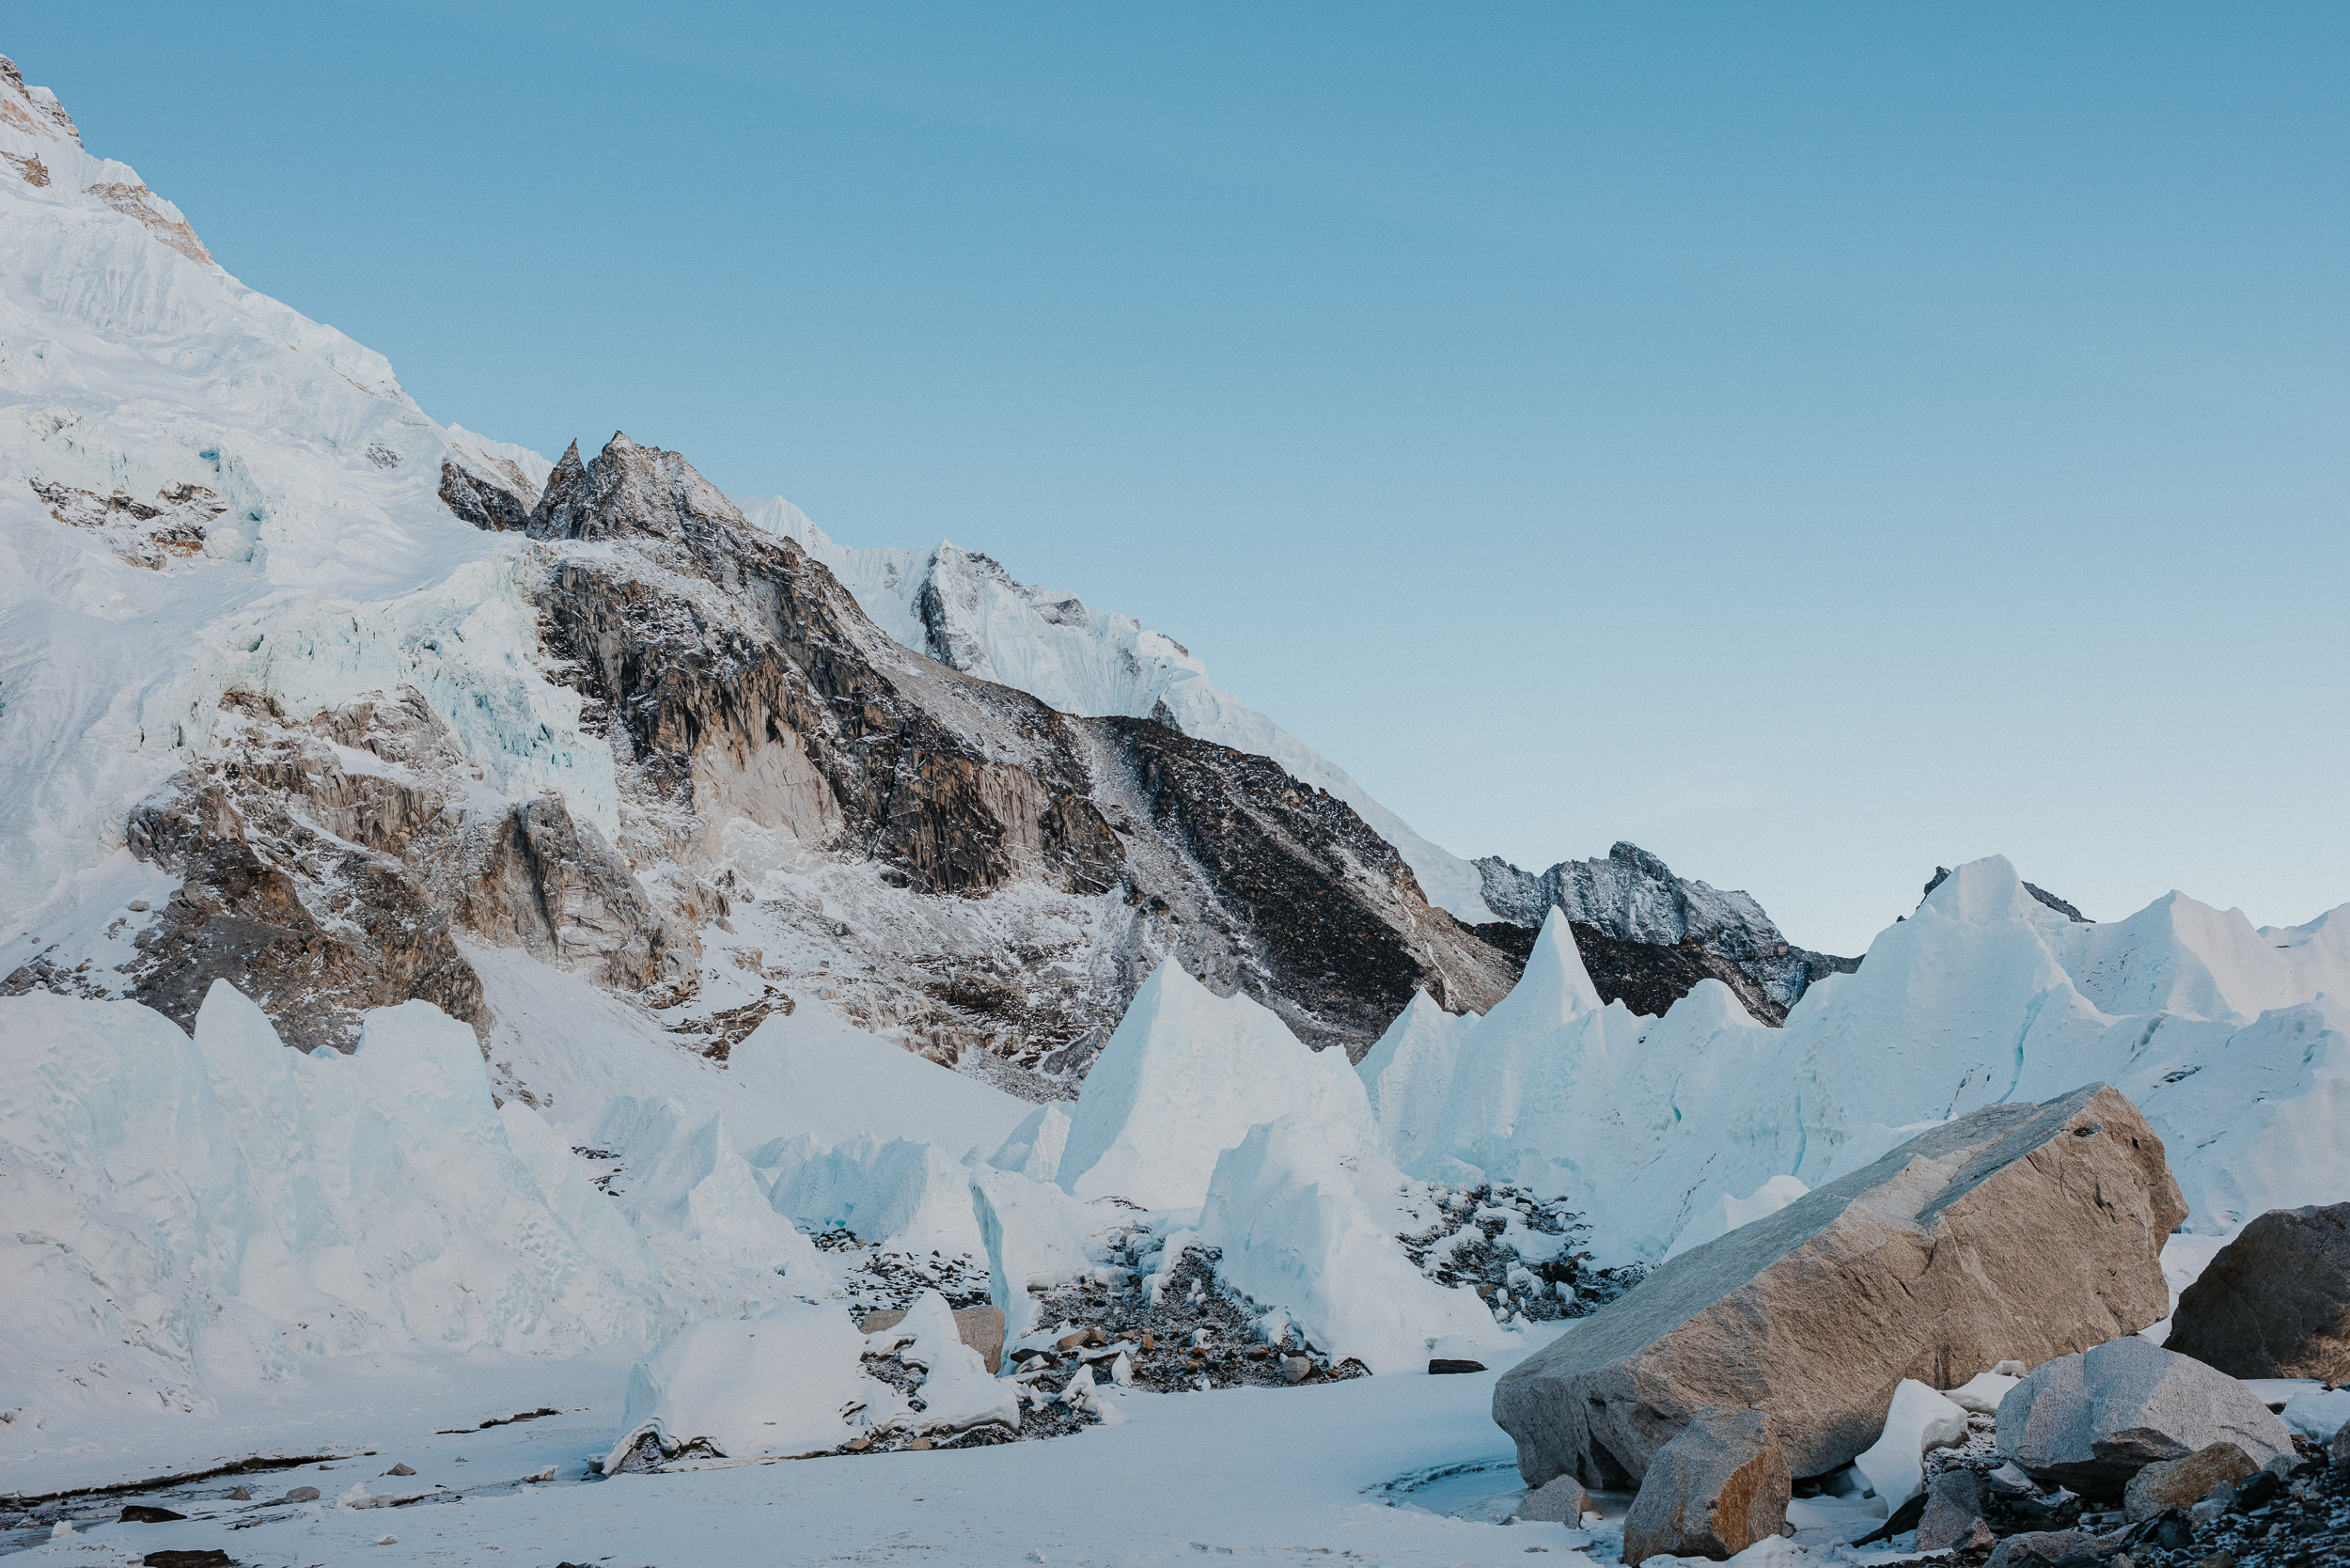 Nepal_EverestBaseCamp_2019_TaraShupe_Photography_DSC_4363.jpg